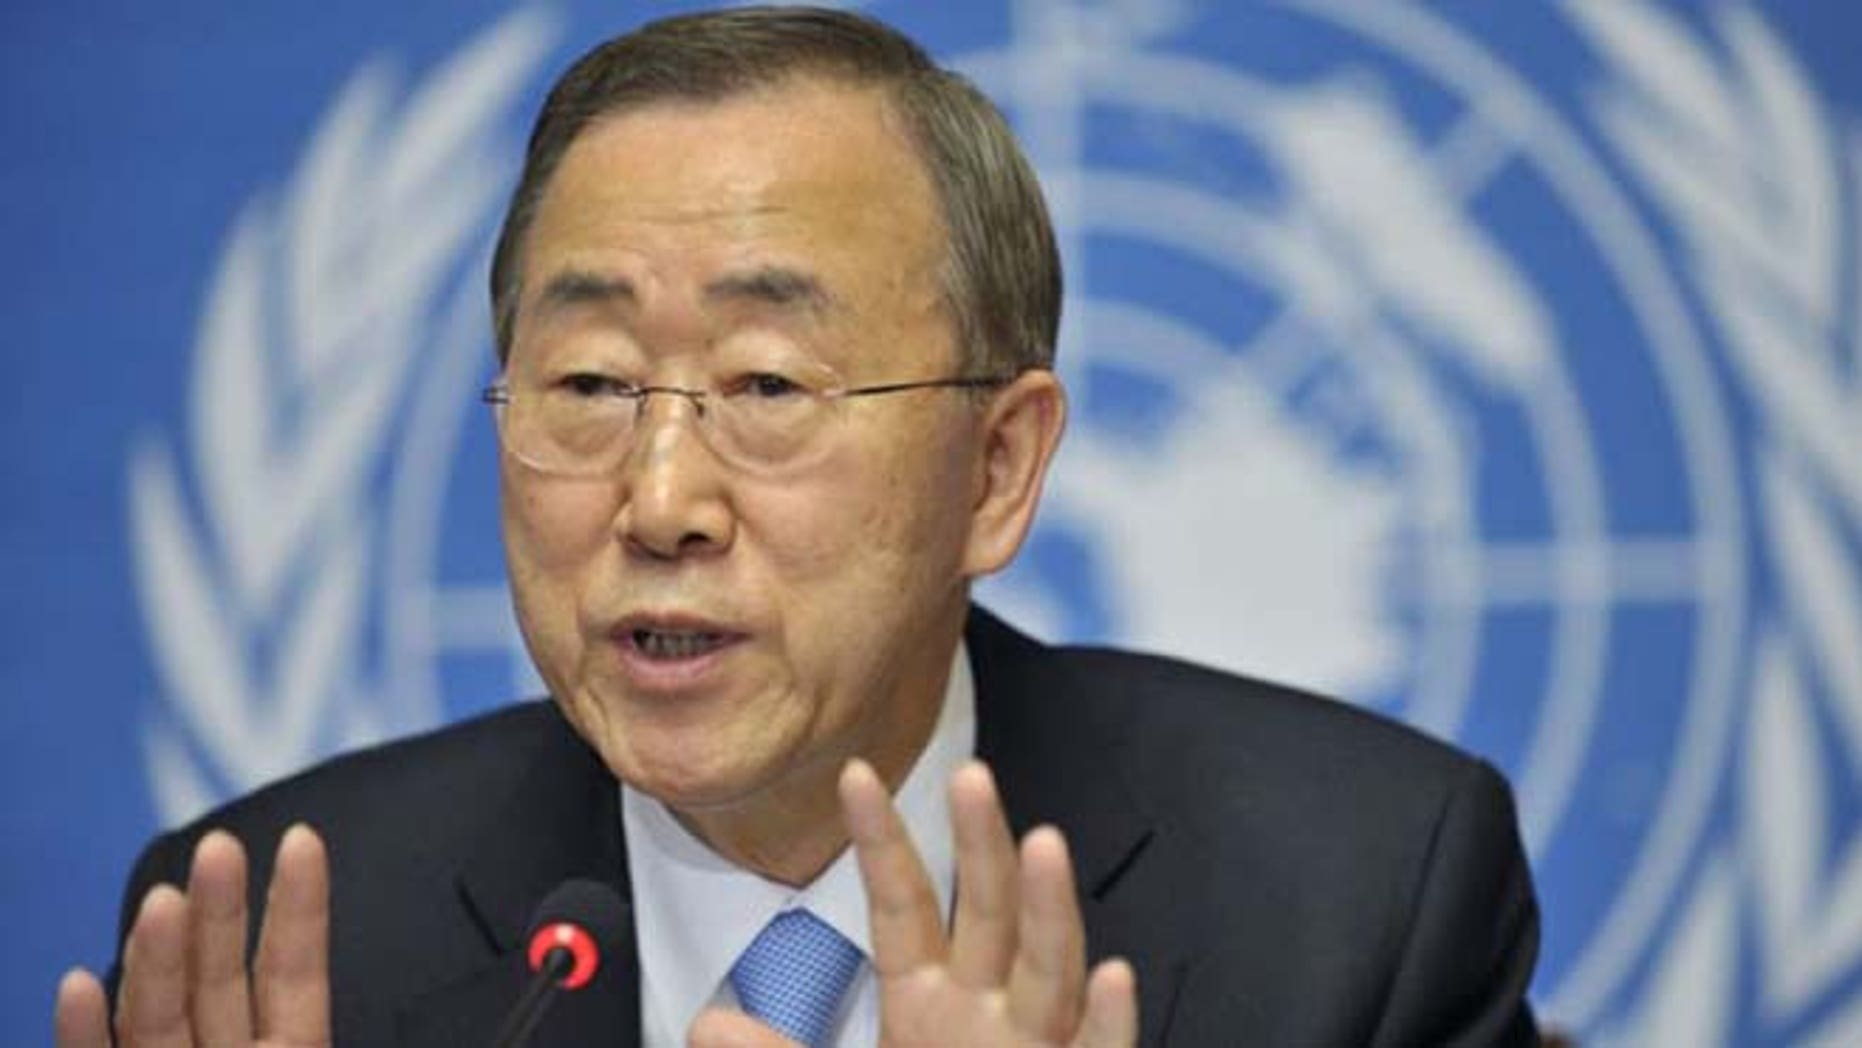 United Nations Secretary-General Ban Ki-moon speaks during a press conference at the European headquarters of the United Nations in Geneva, Switzerland. (AP)